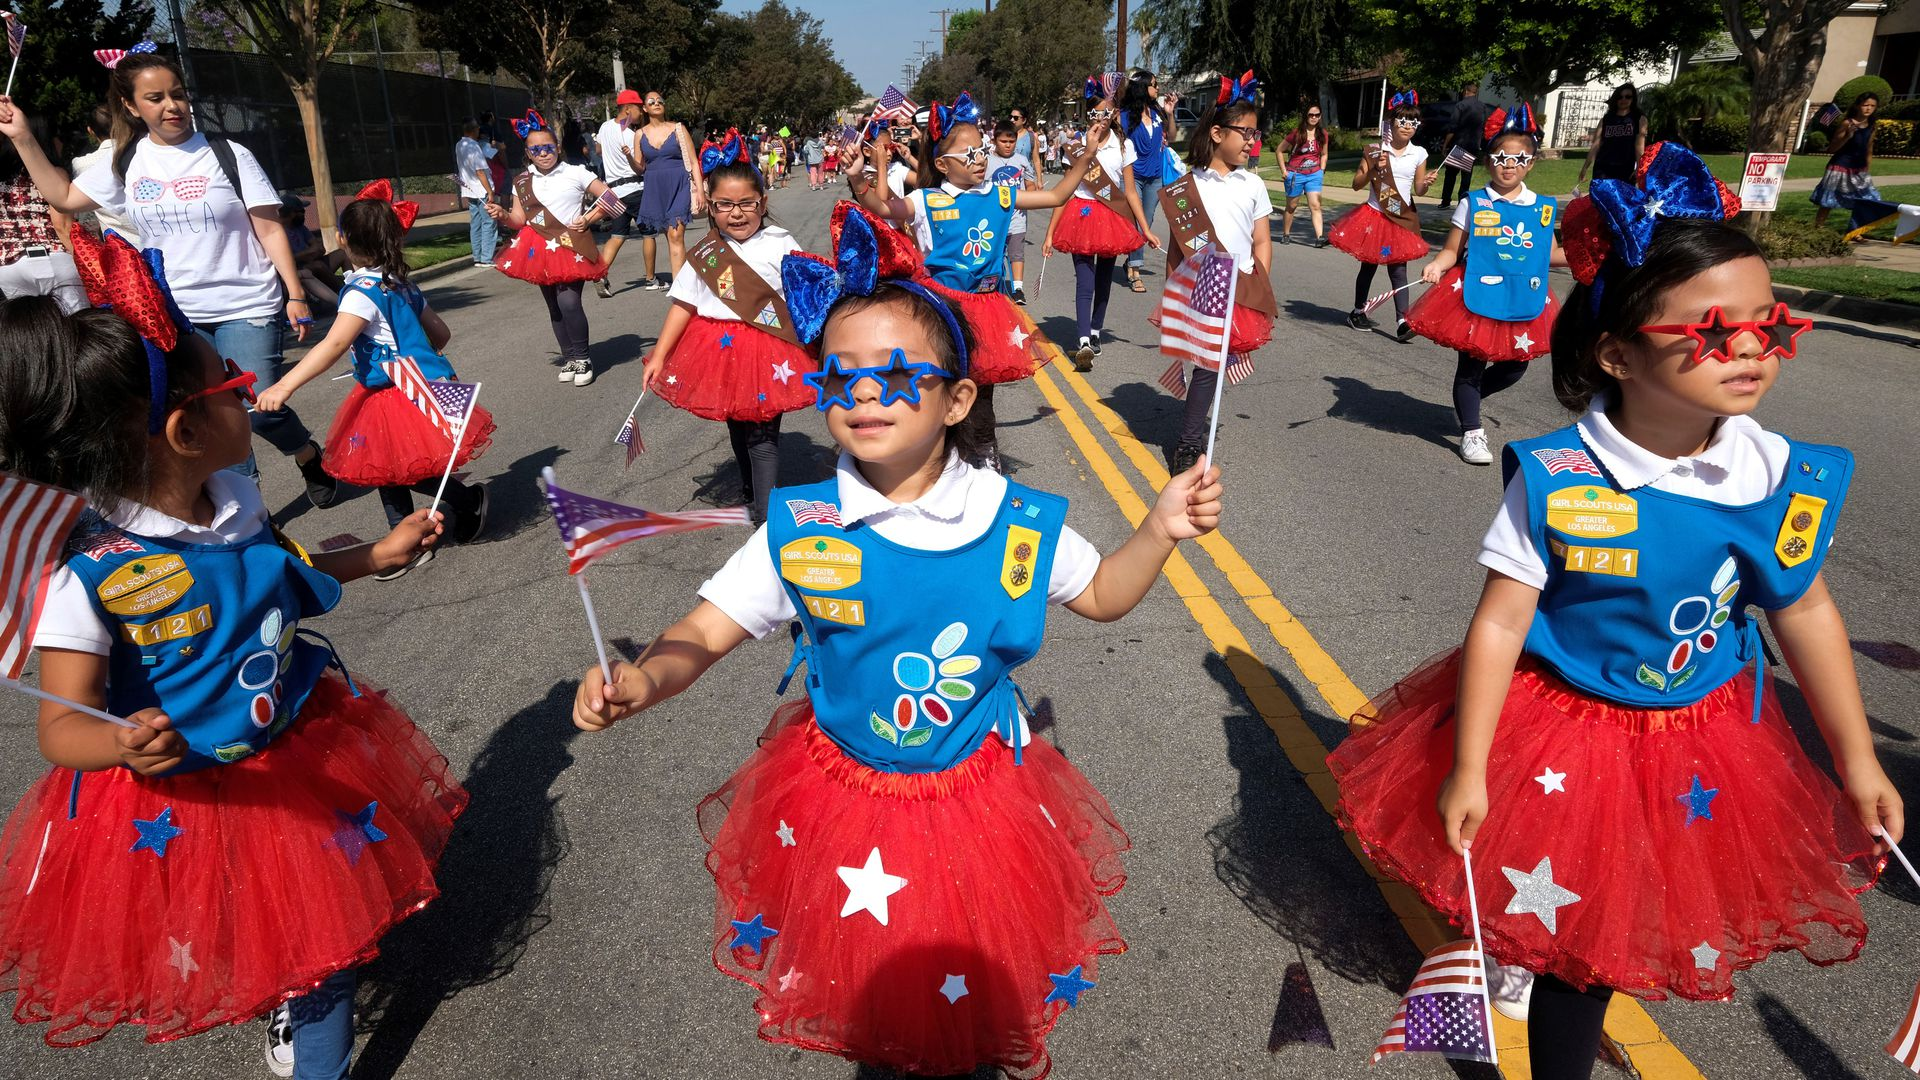 Young children in a fourth of july parade